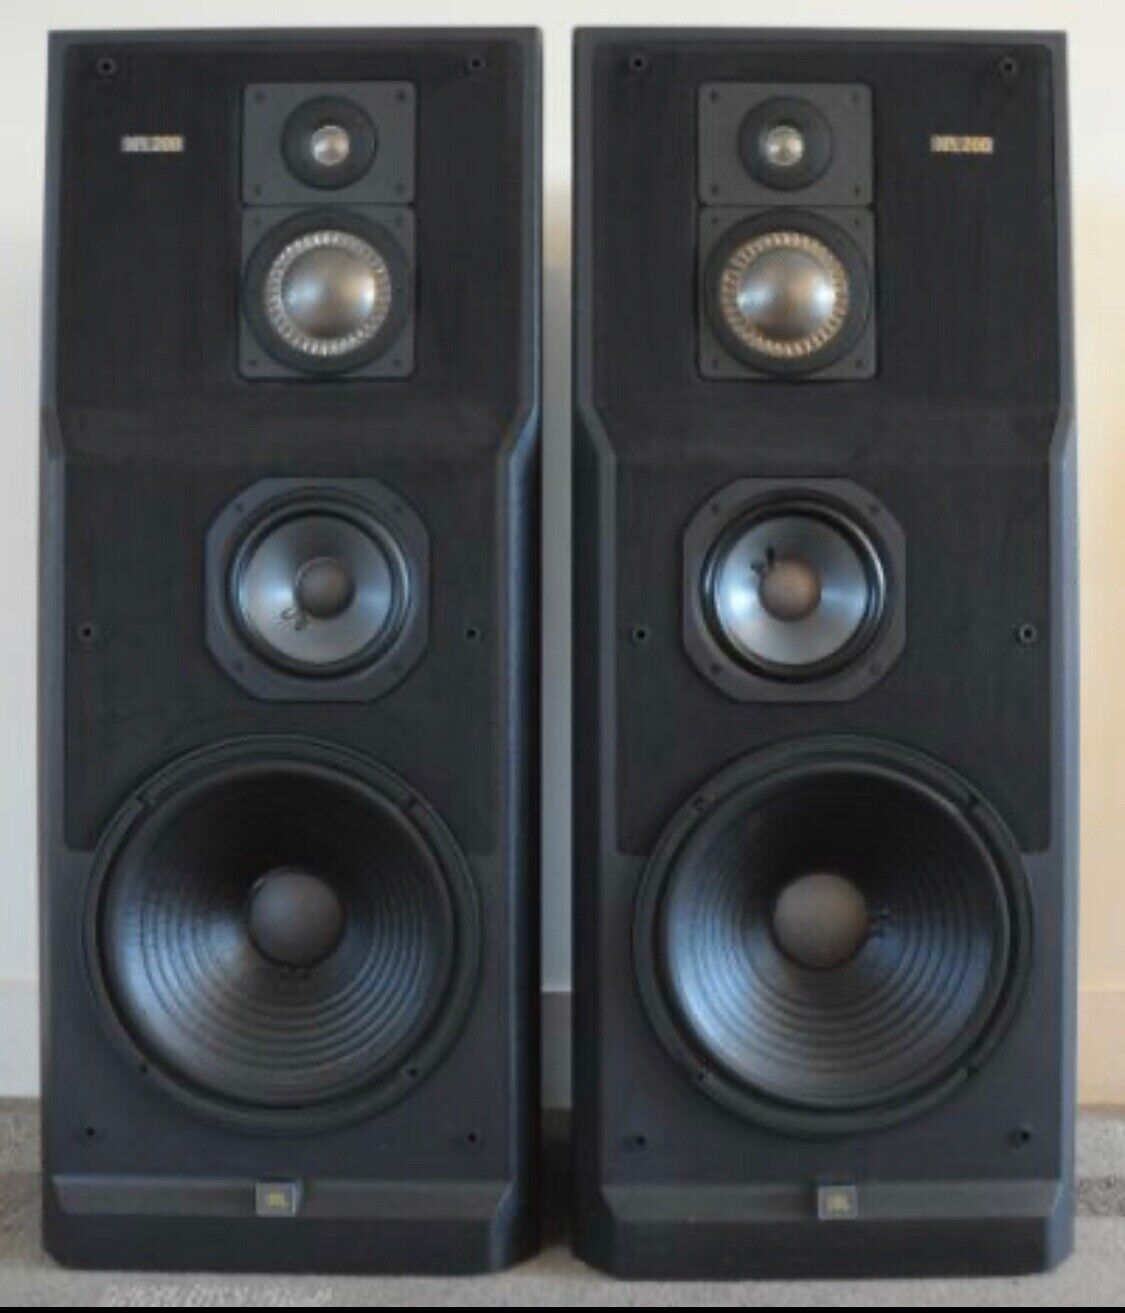 s l1600 - Vintage Rare JBL XPL-200A 4-Way Top Of The Line Speaker Pair